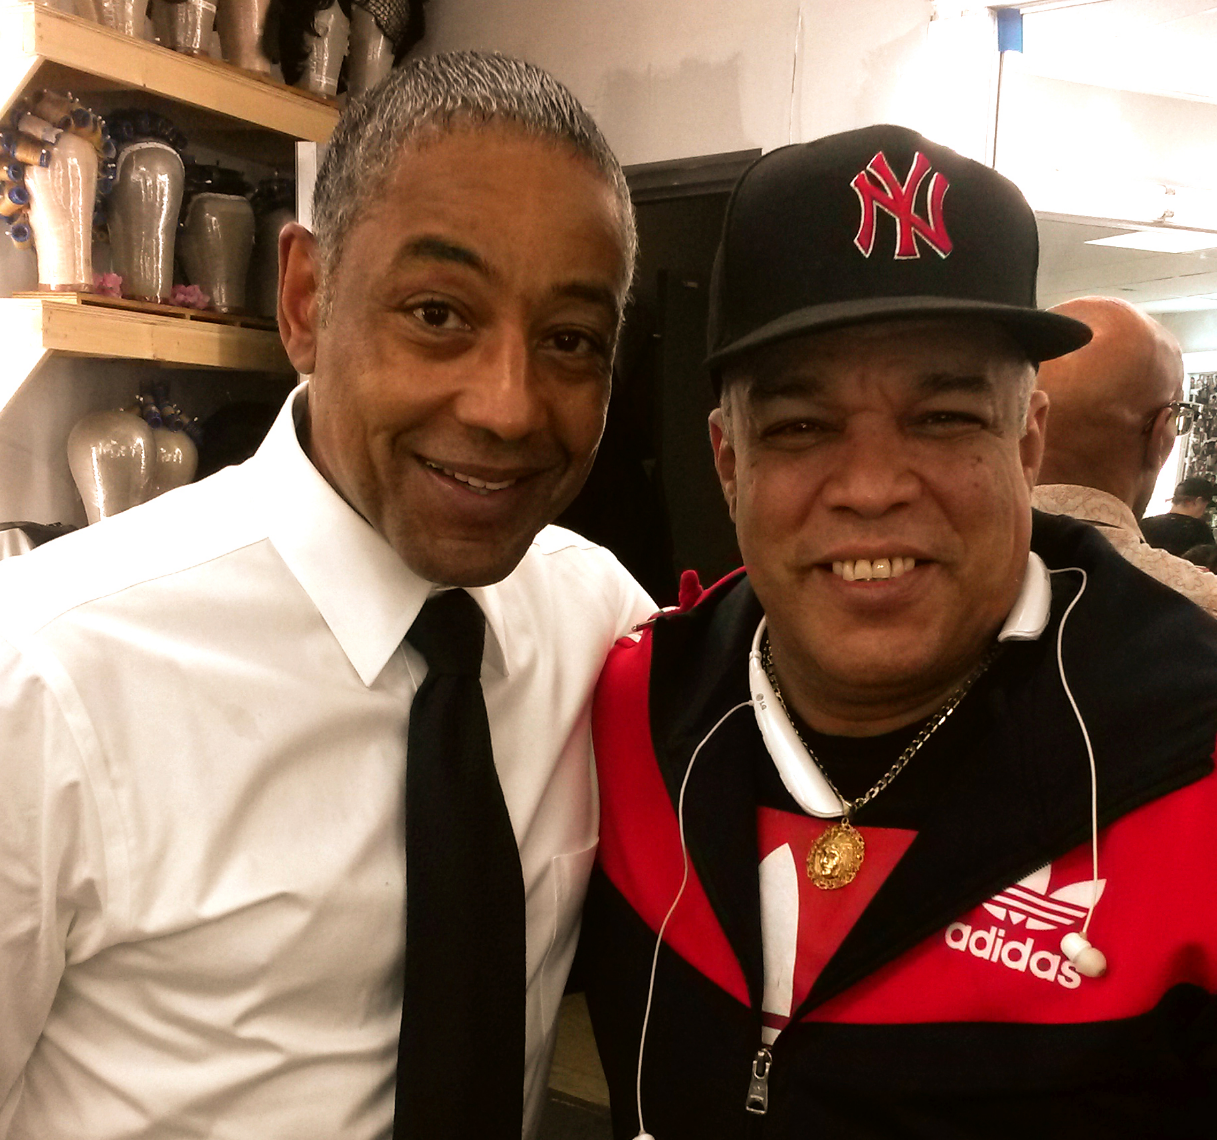 Willie Estrada & Giancarlo Esposito